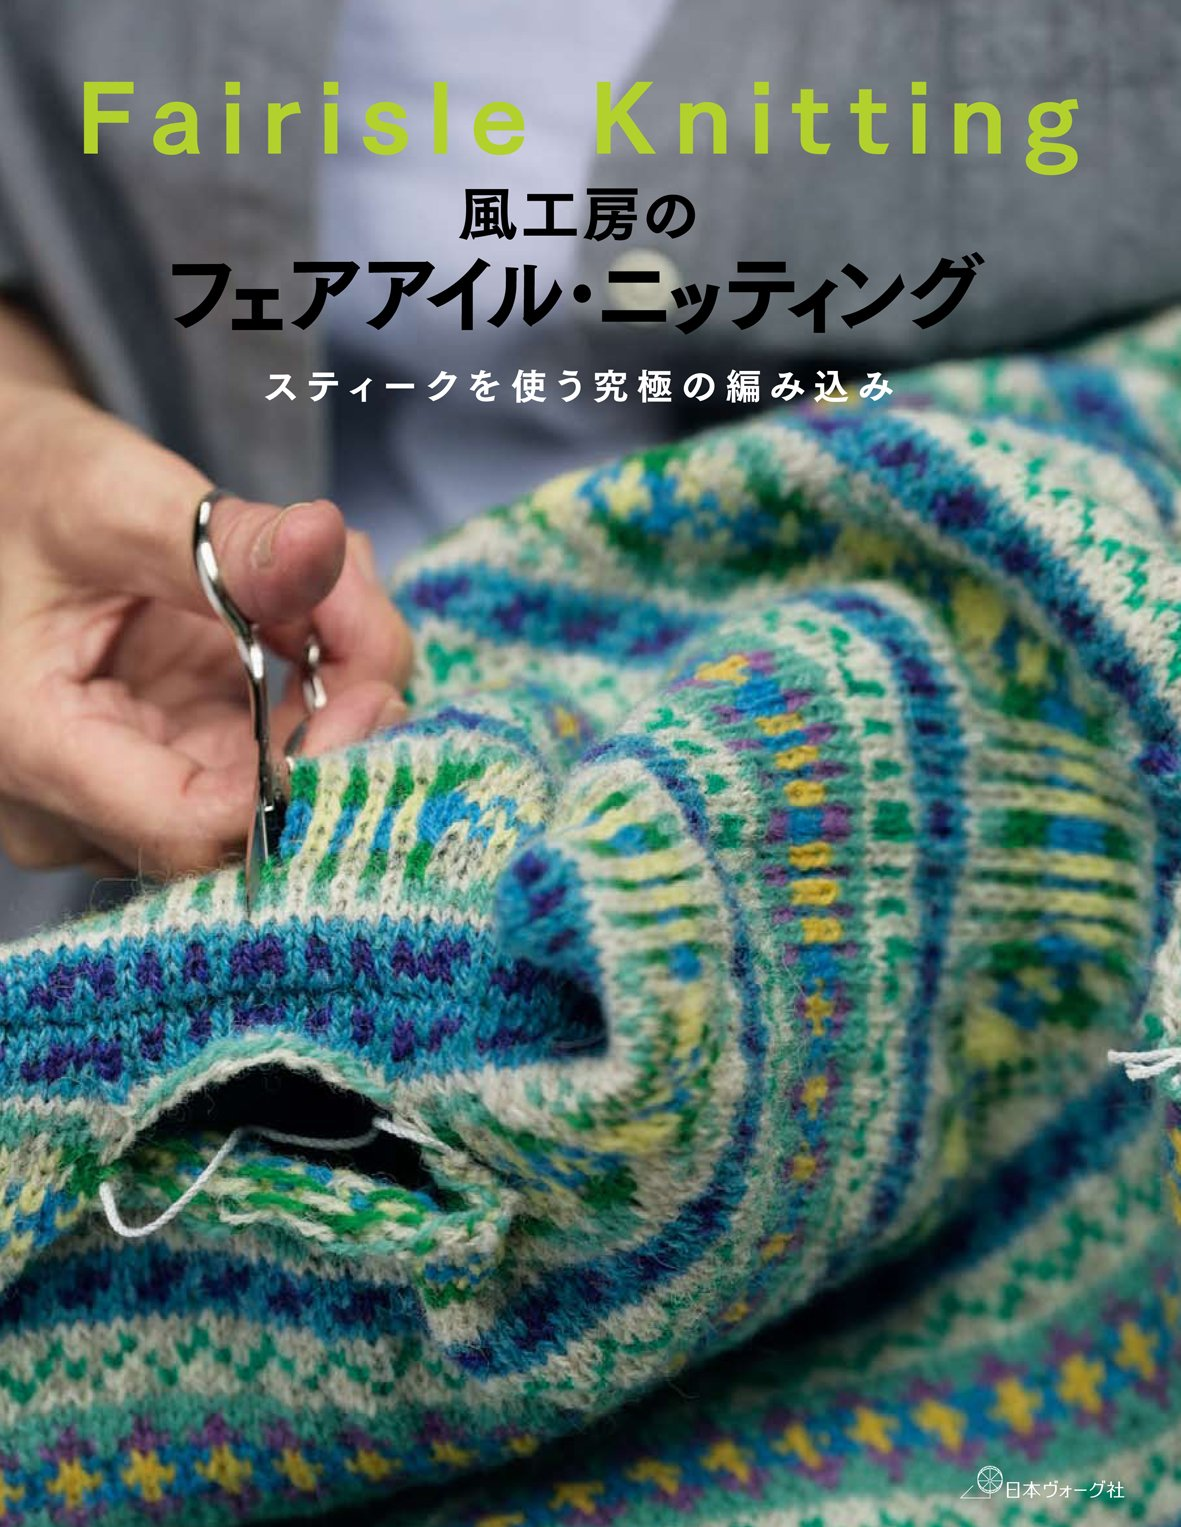 Wind workshop of Fair Isle Knitting